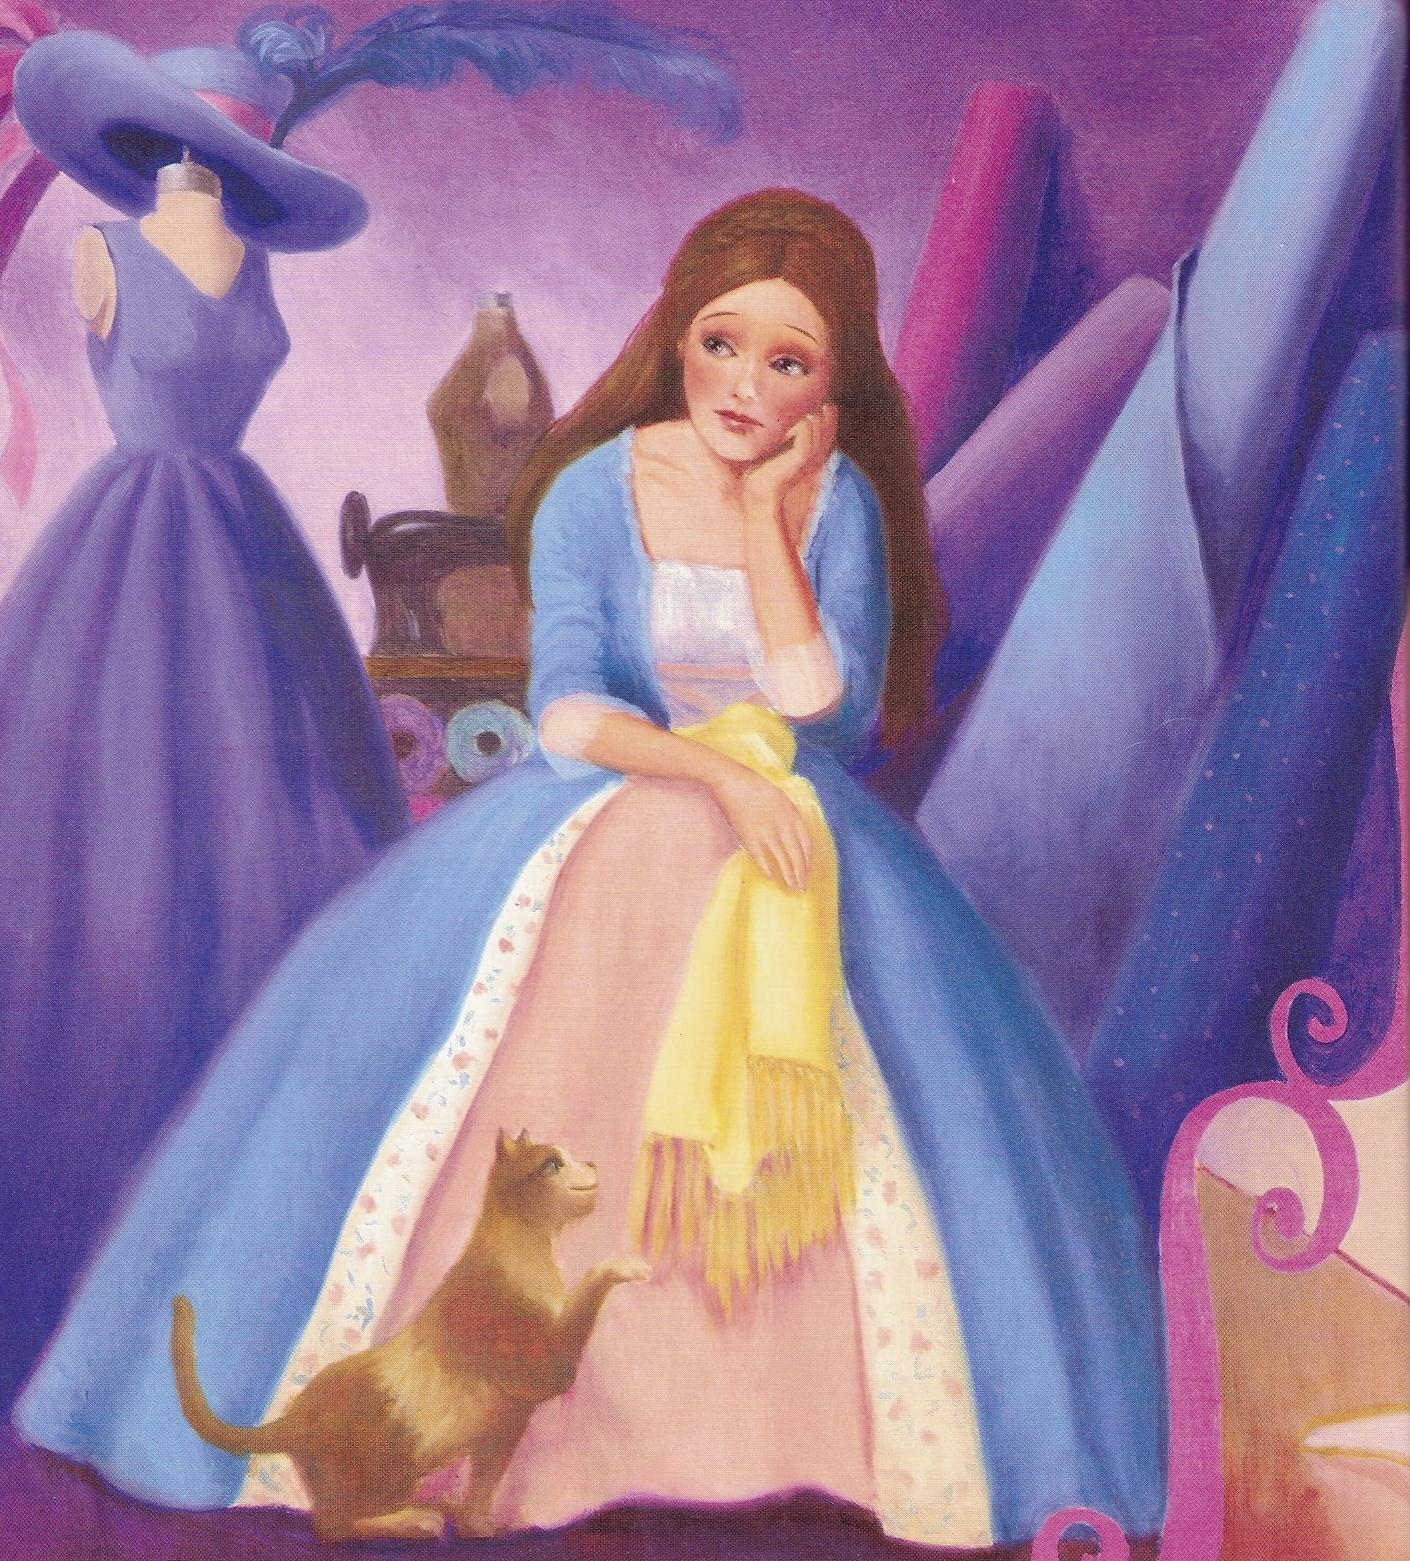 Princess And The Pauper Barbie Princess And The Pauper Princess And The Pauper